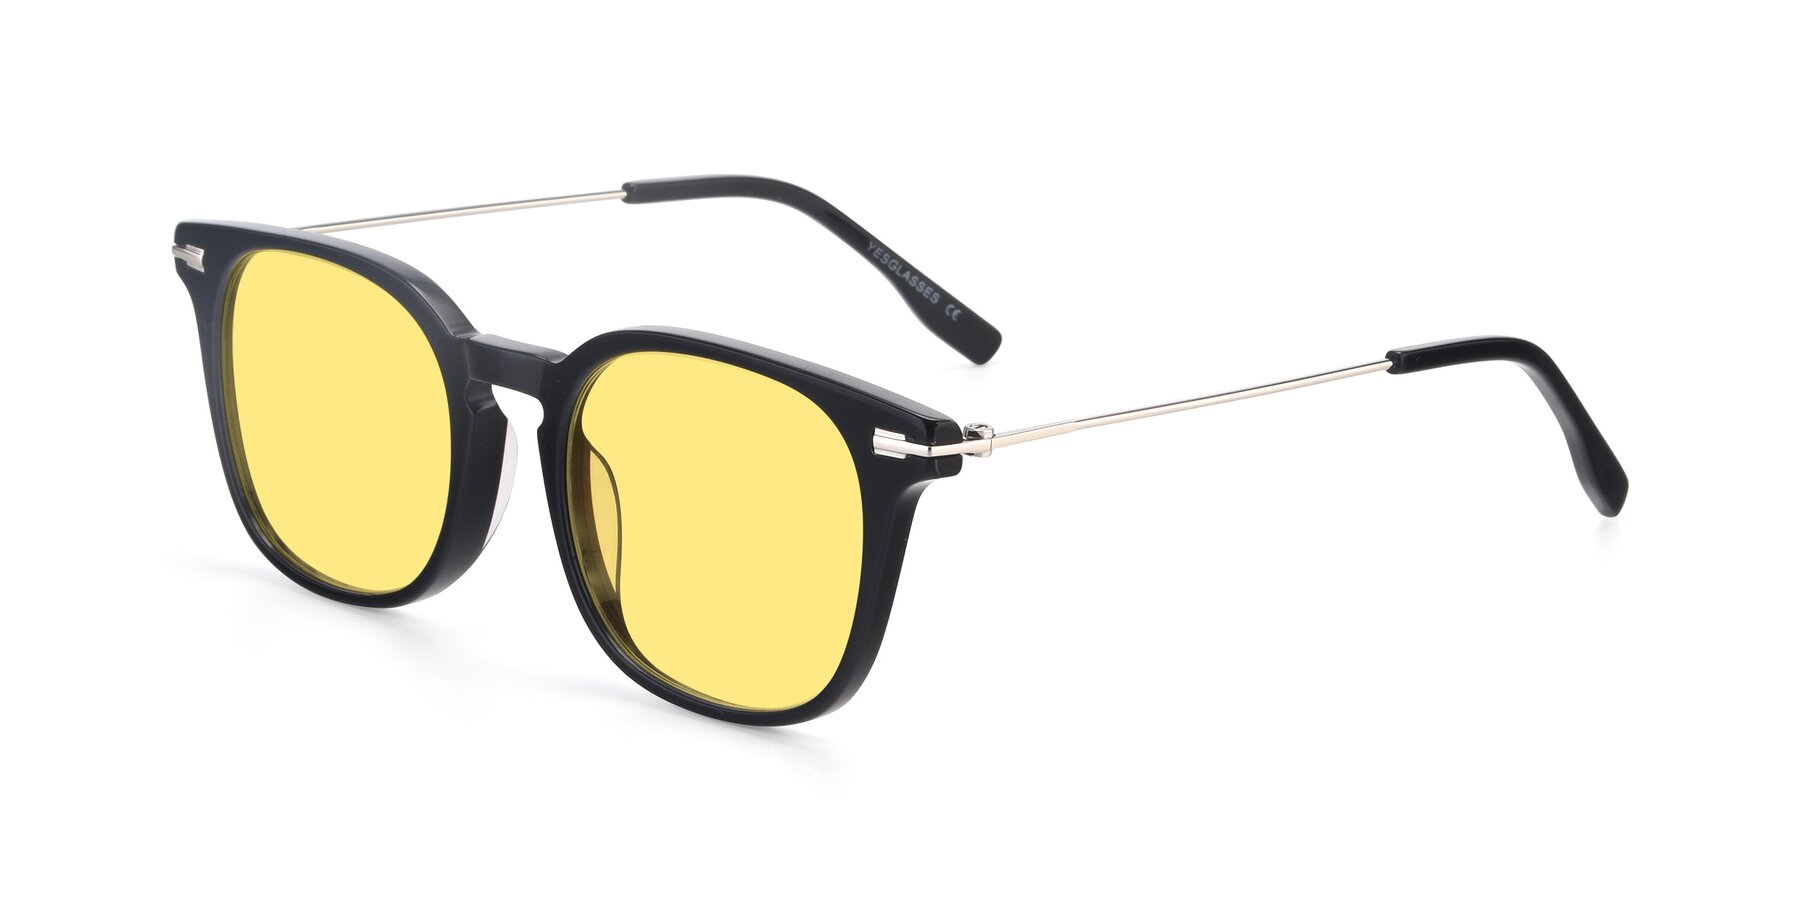 Angle of 17711 in Black with Medium Yellow Tinted Lenses